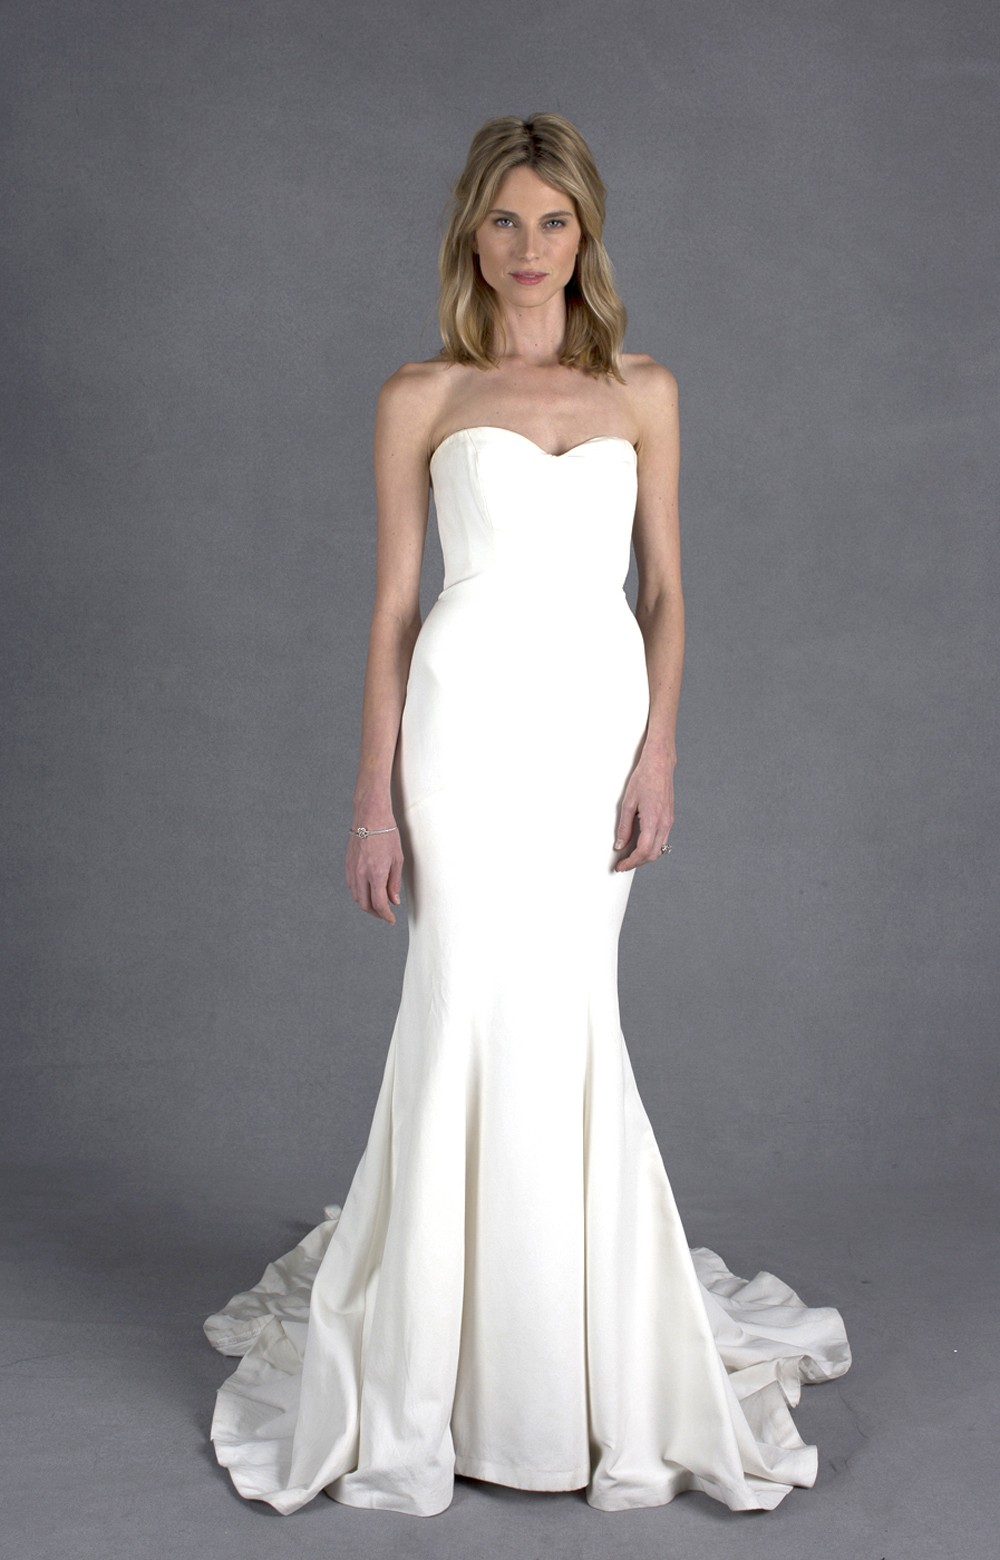 nicole miller dakota bridal gown in white lyst With nicole miller dakota wedding dress